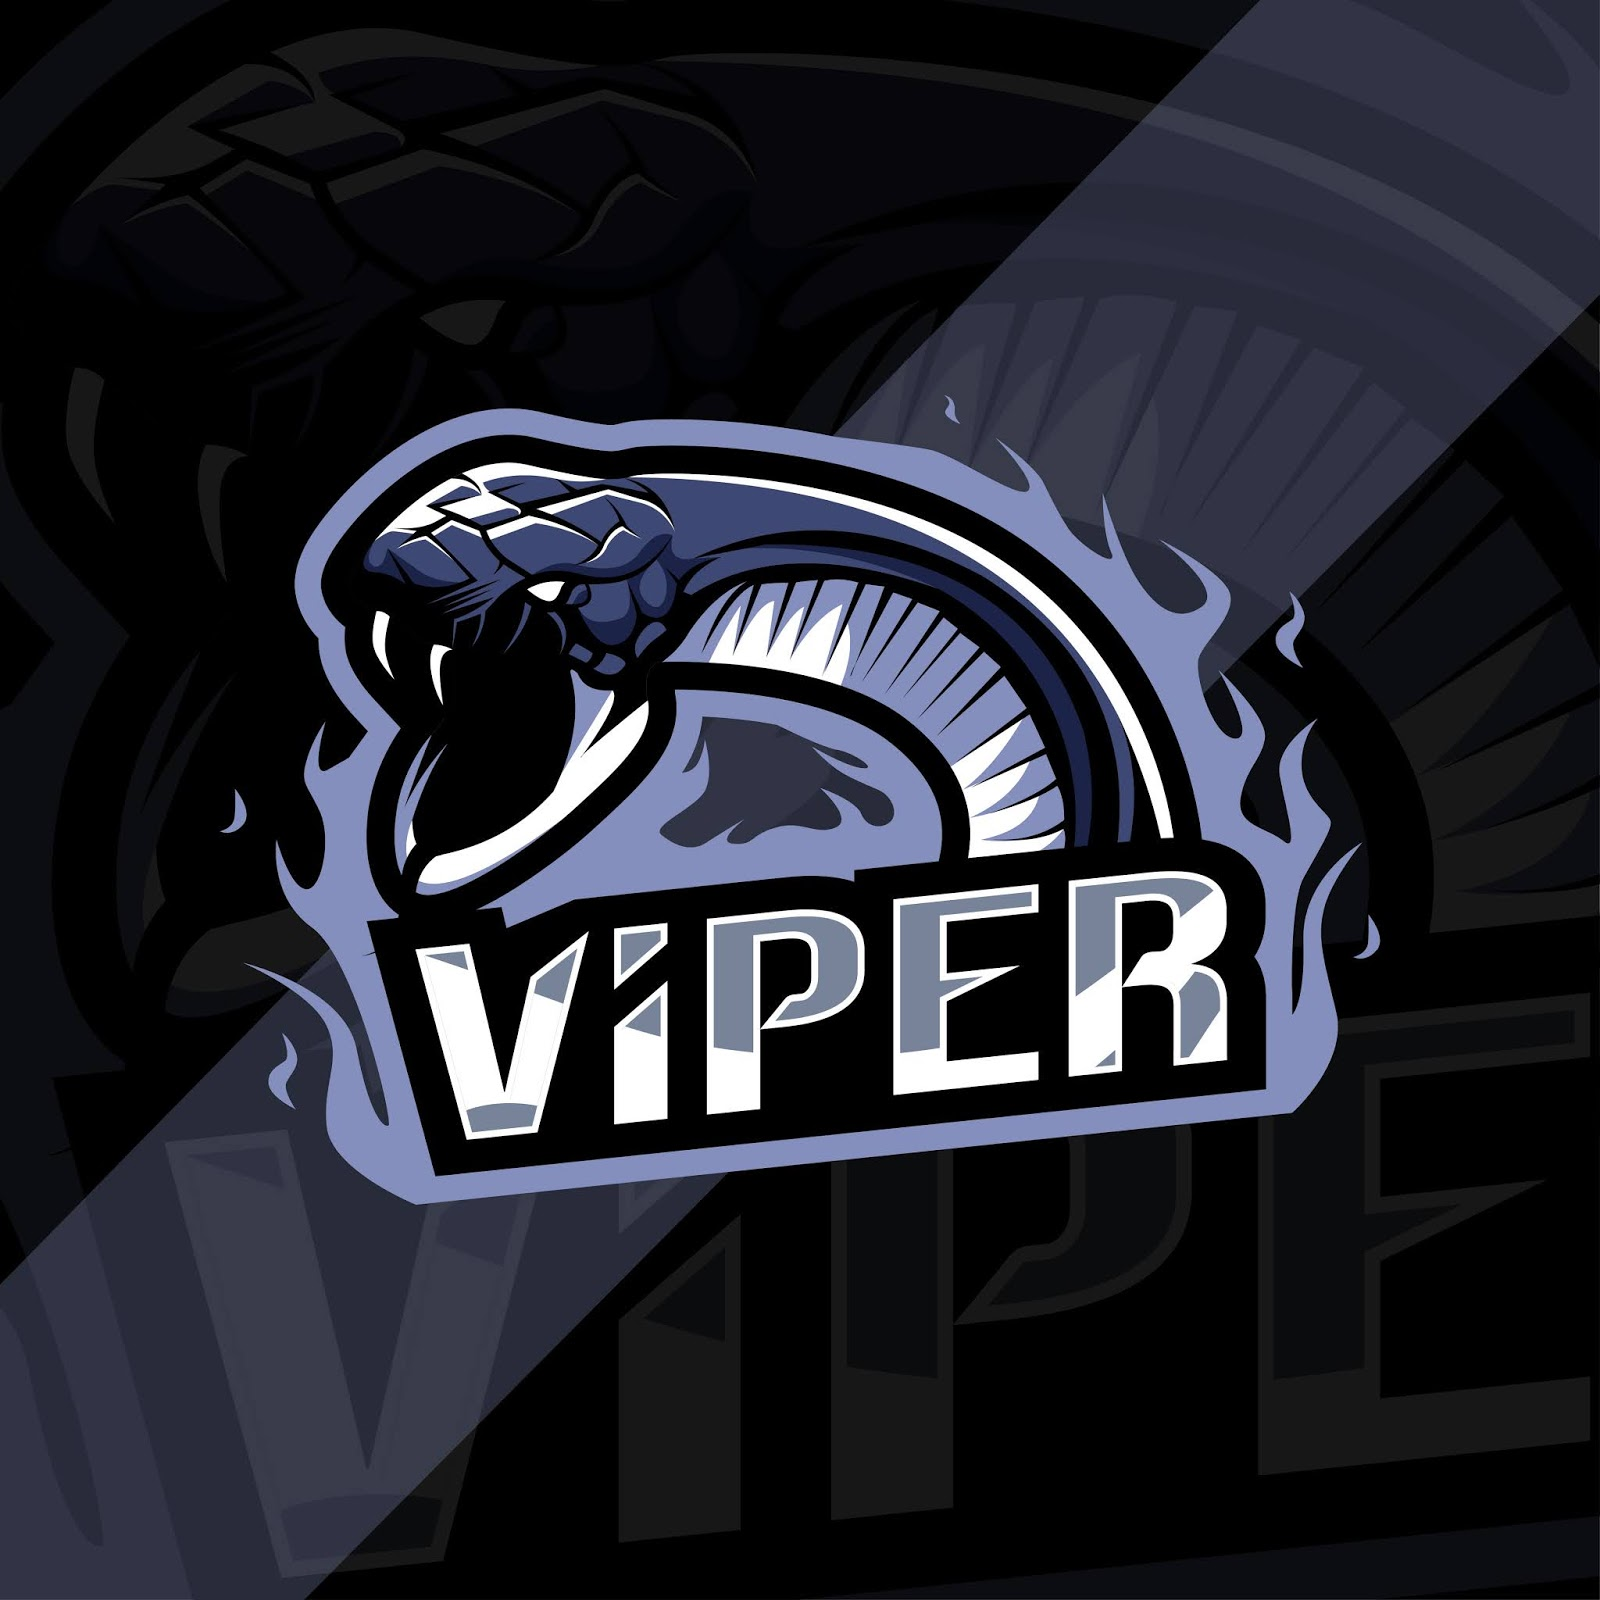 Viper Mascot Logo Funny Free Download Vector CDR, AI, EPS and PNG Formats